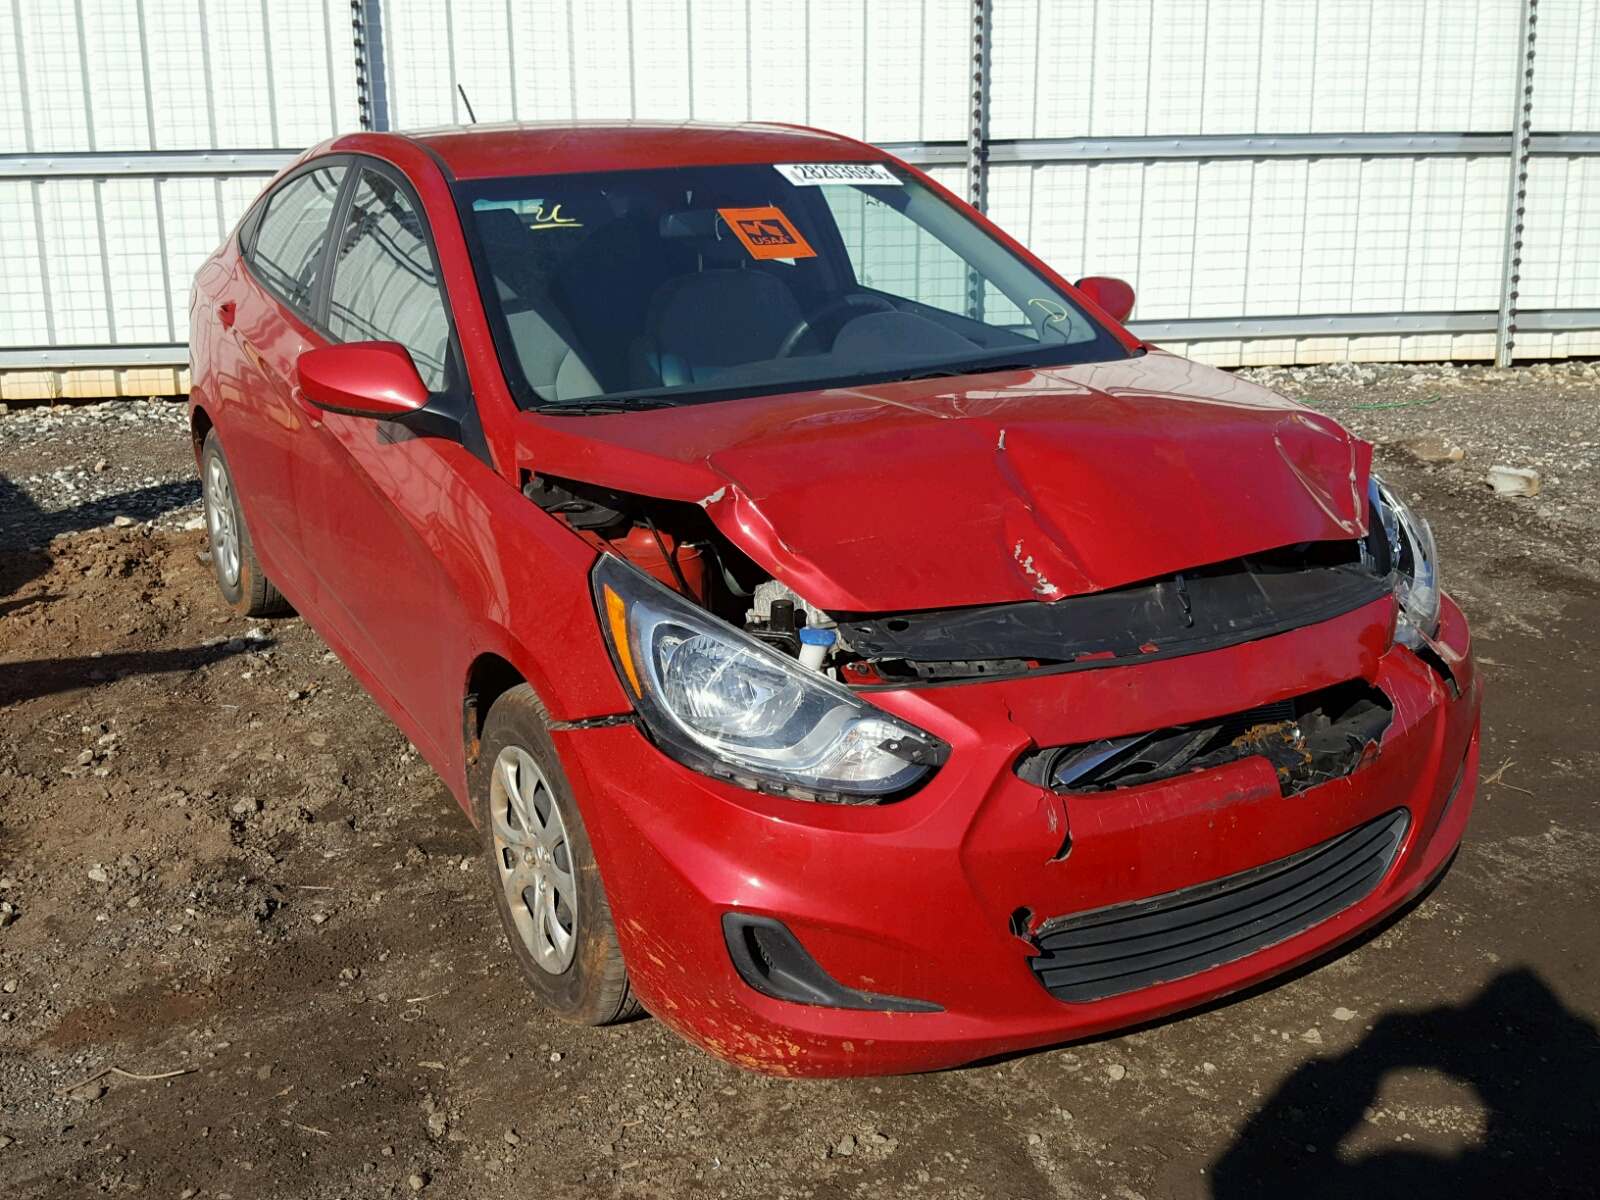 red lot view en copart carfinder cert hyundai of on auctions santa fe online greer sale salvage left in auto sc g title